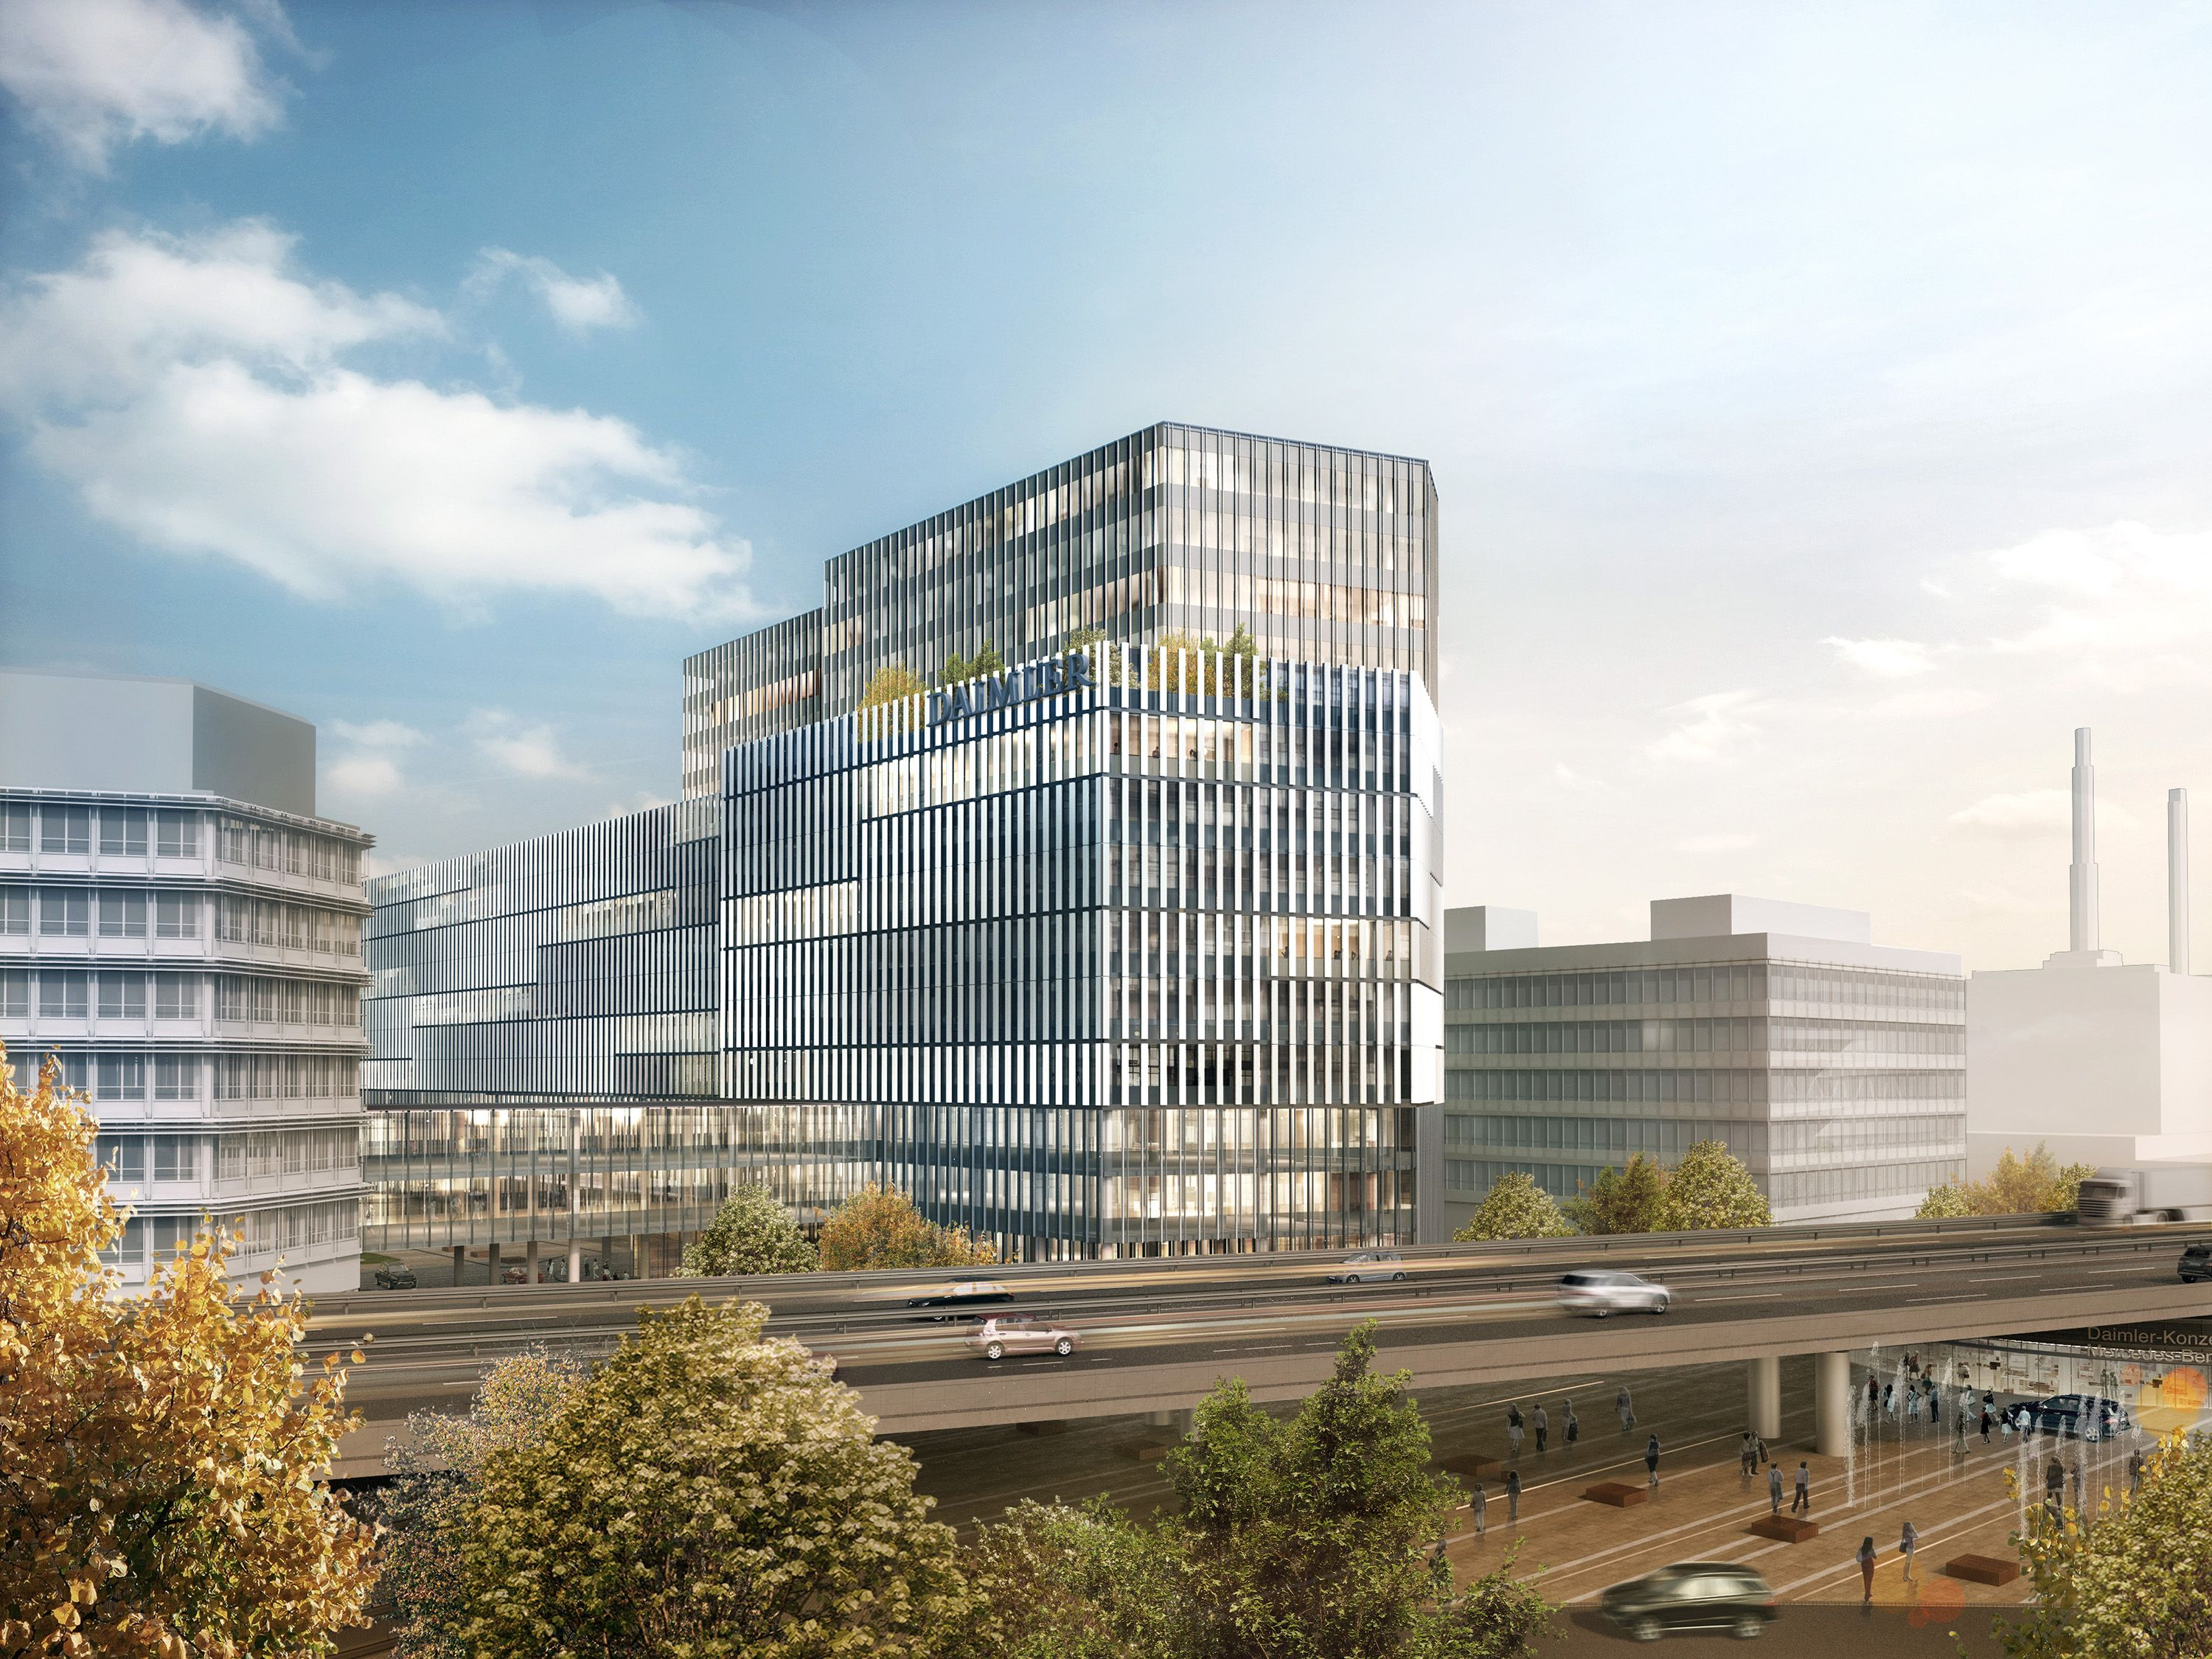 Cgi Hamburg Scoopimages Für Hpp Architekten #berlin #hamburg # ...